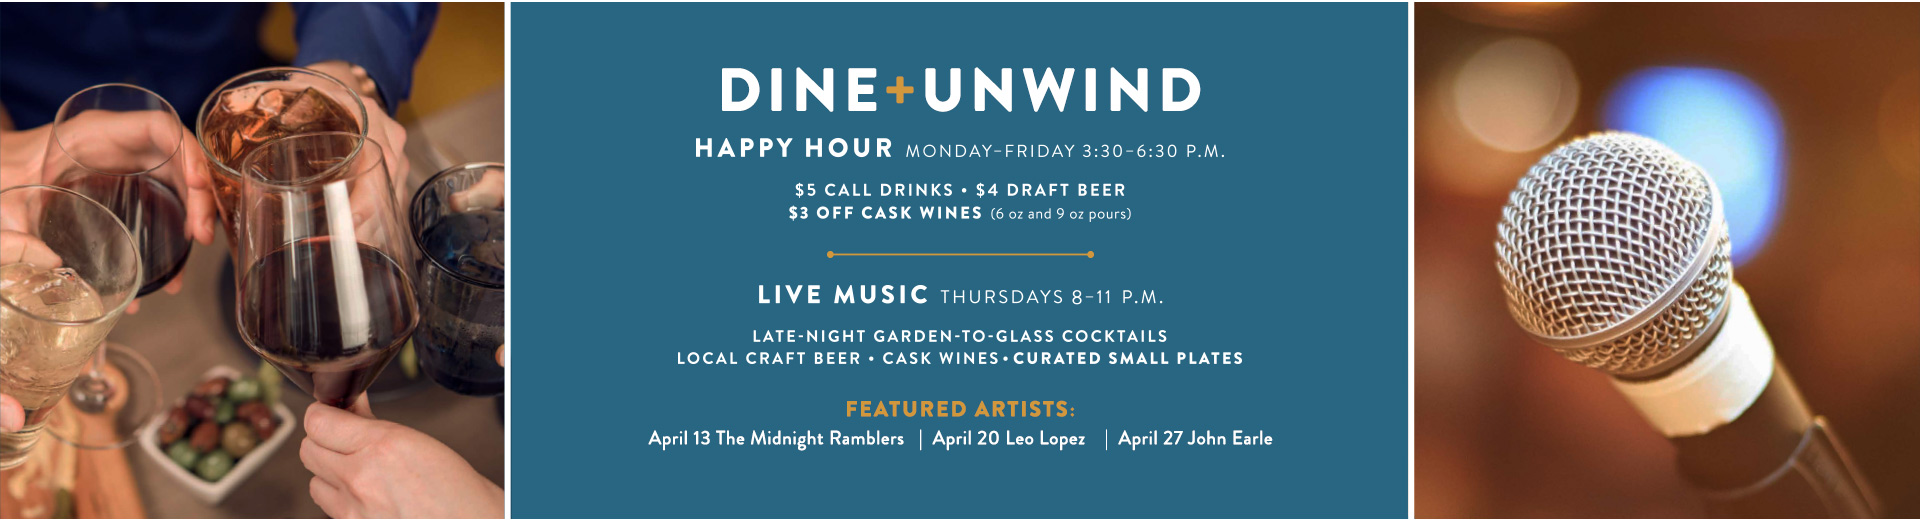 Happy Hour M-F: 3:30-6:30 PM | Late Nights: Thu 9-11:30 PM | View Menu